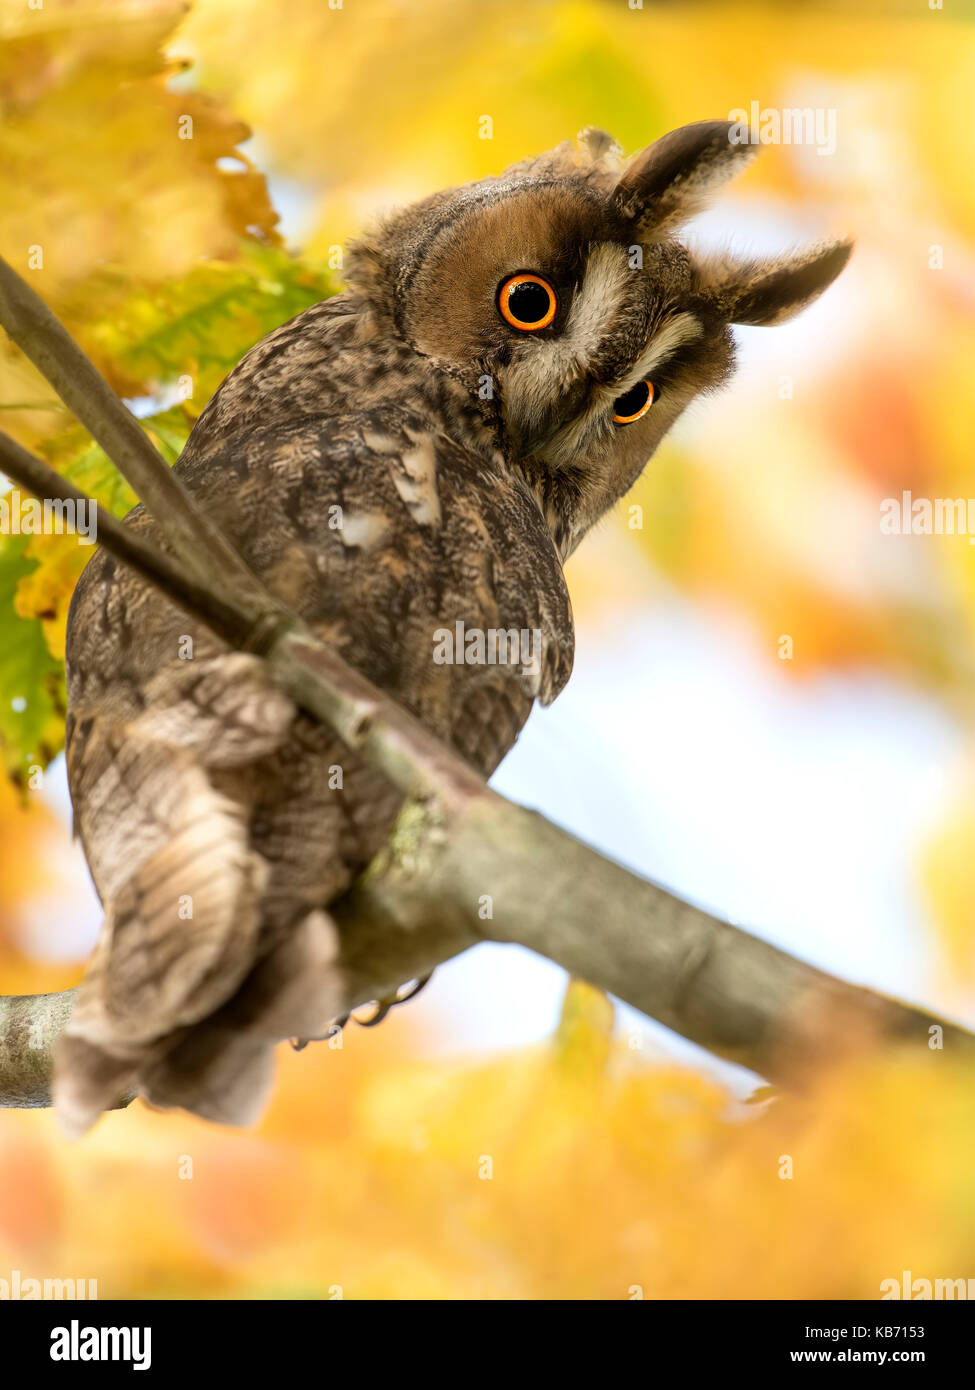 Long-eared Owl (Asio otus) perched in a tree between autumn leaves, The Netherlands, Gelderland - Stock Image